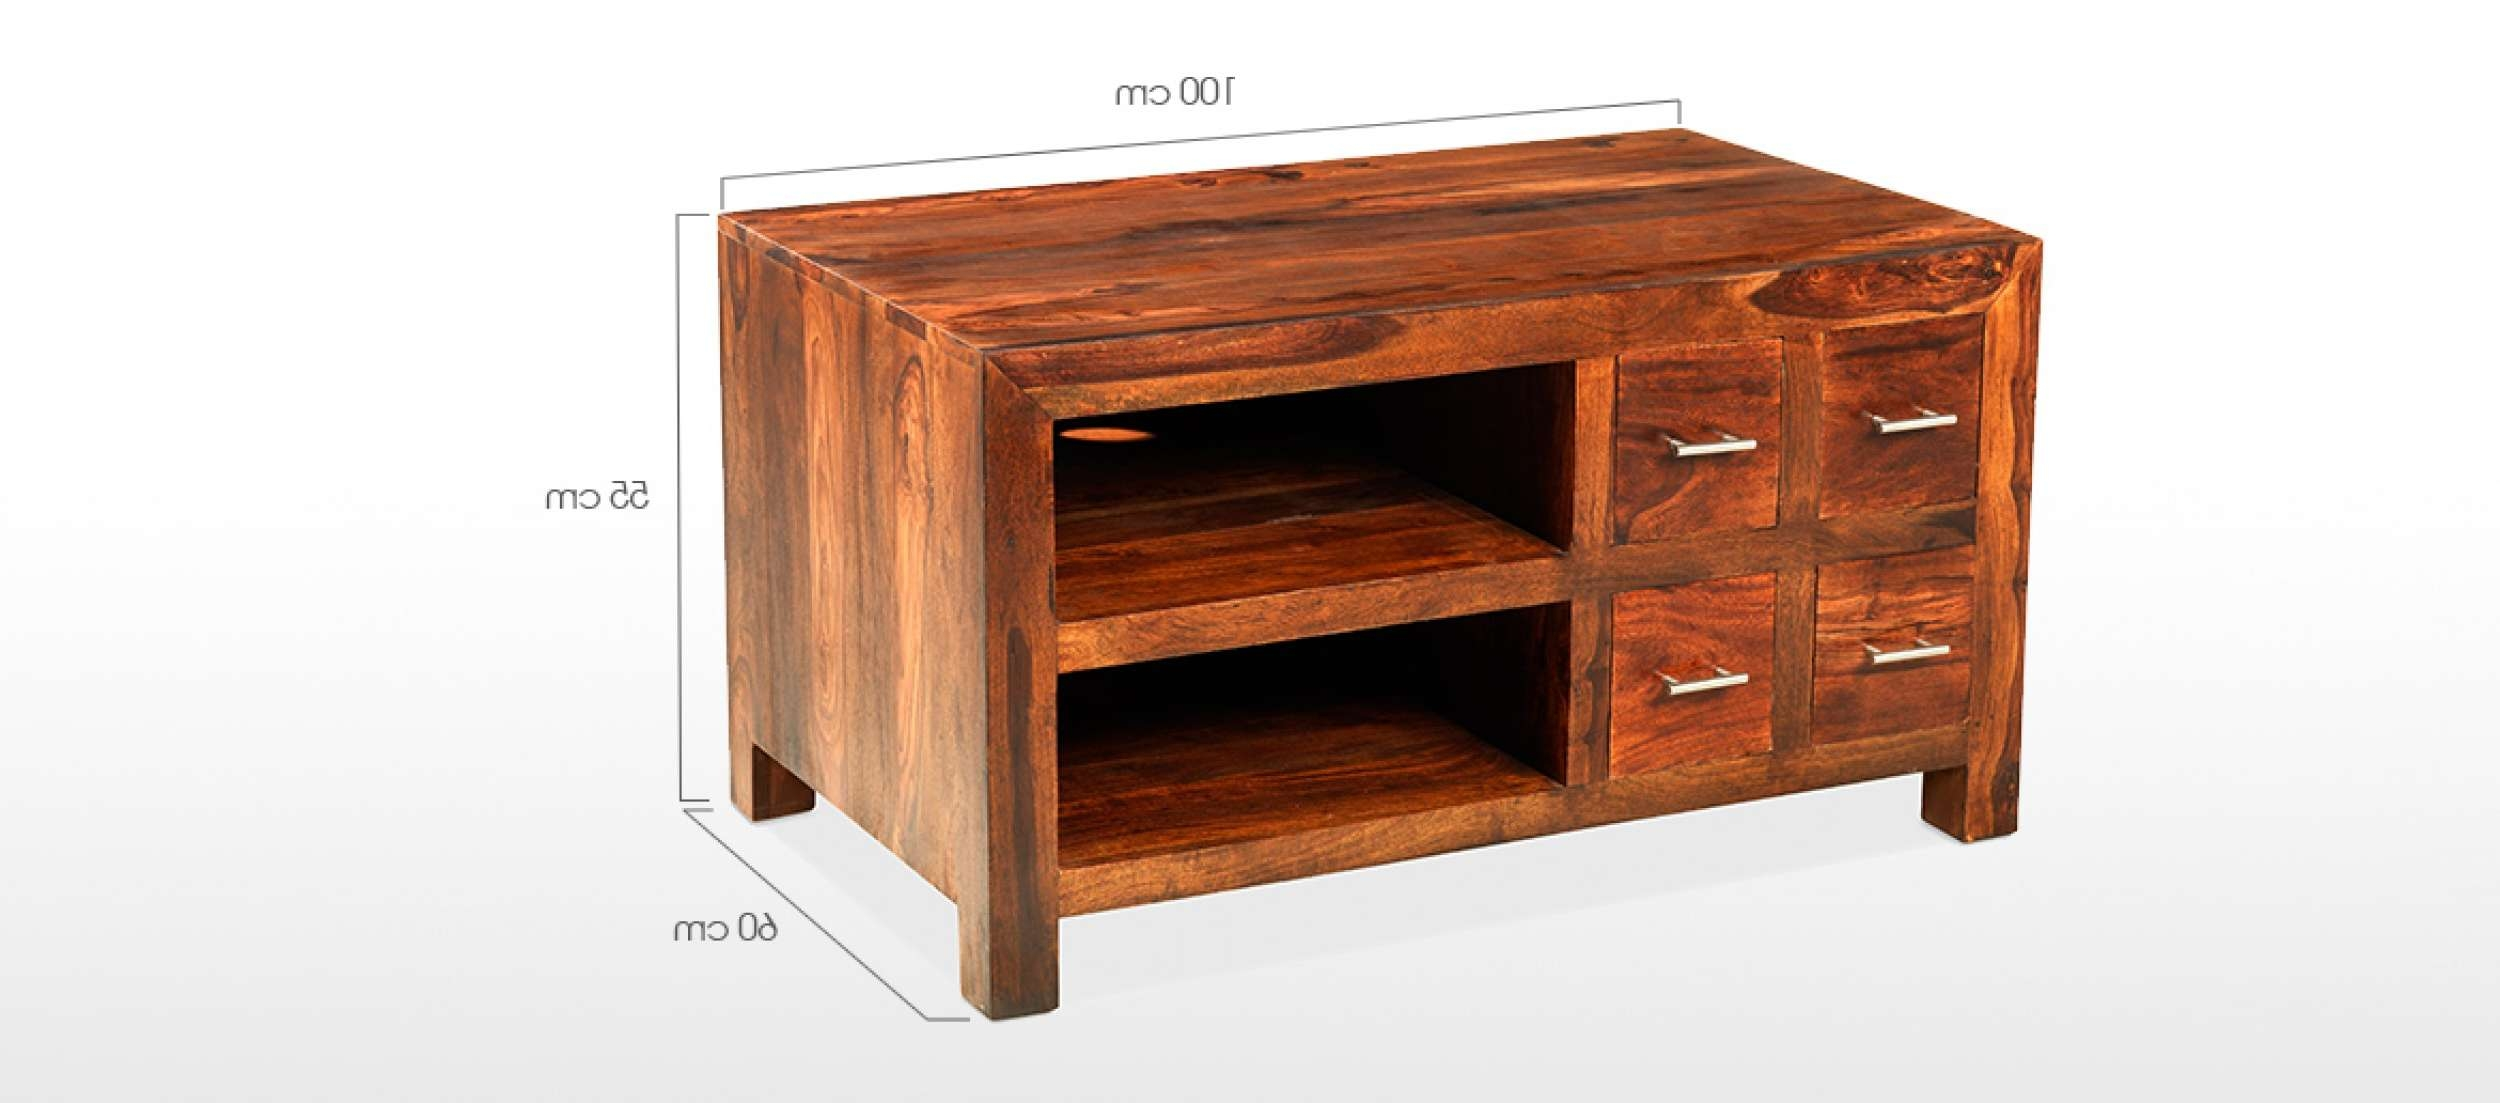 Cube Sheesham Tv Cabinet | Quercus Living Inside Sheesham Tv Stands (View 6 of 15)